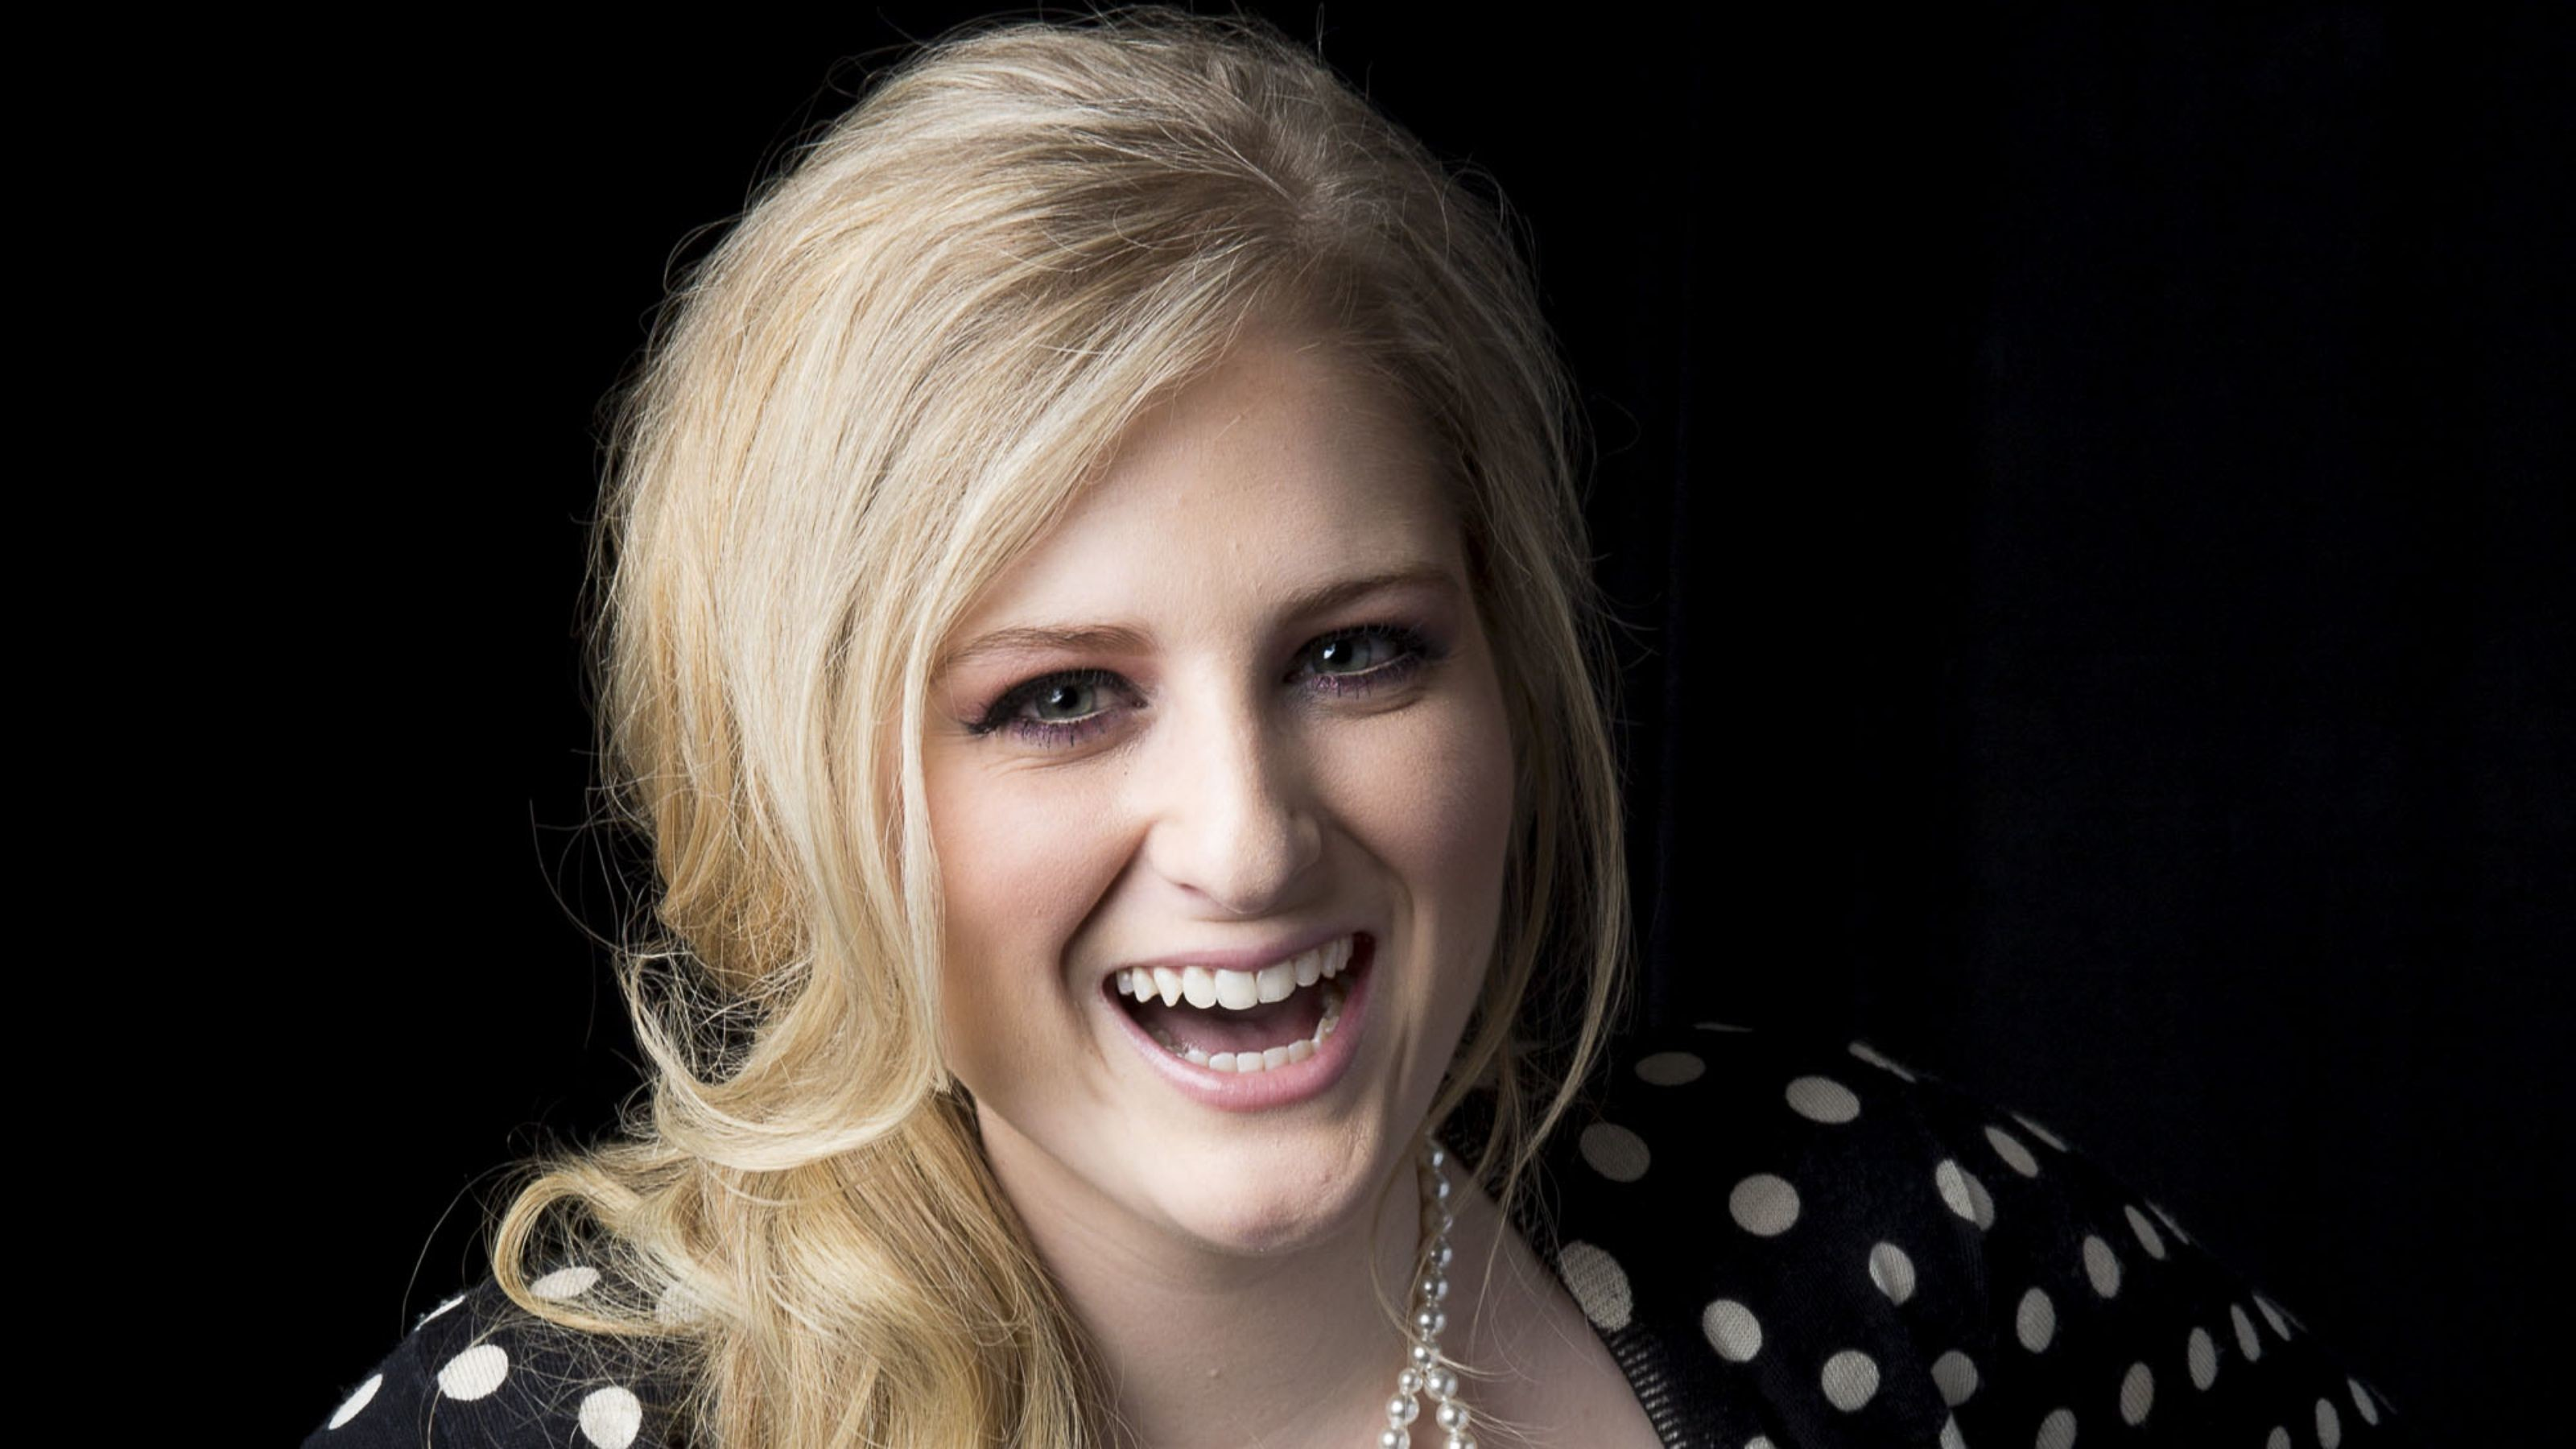 Meghan Trainor Hot HD Wallpaper Wallpaper